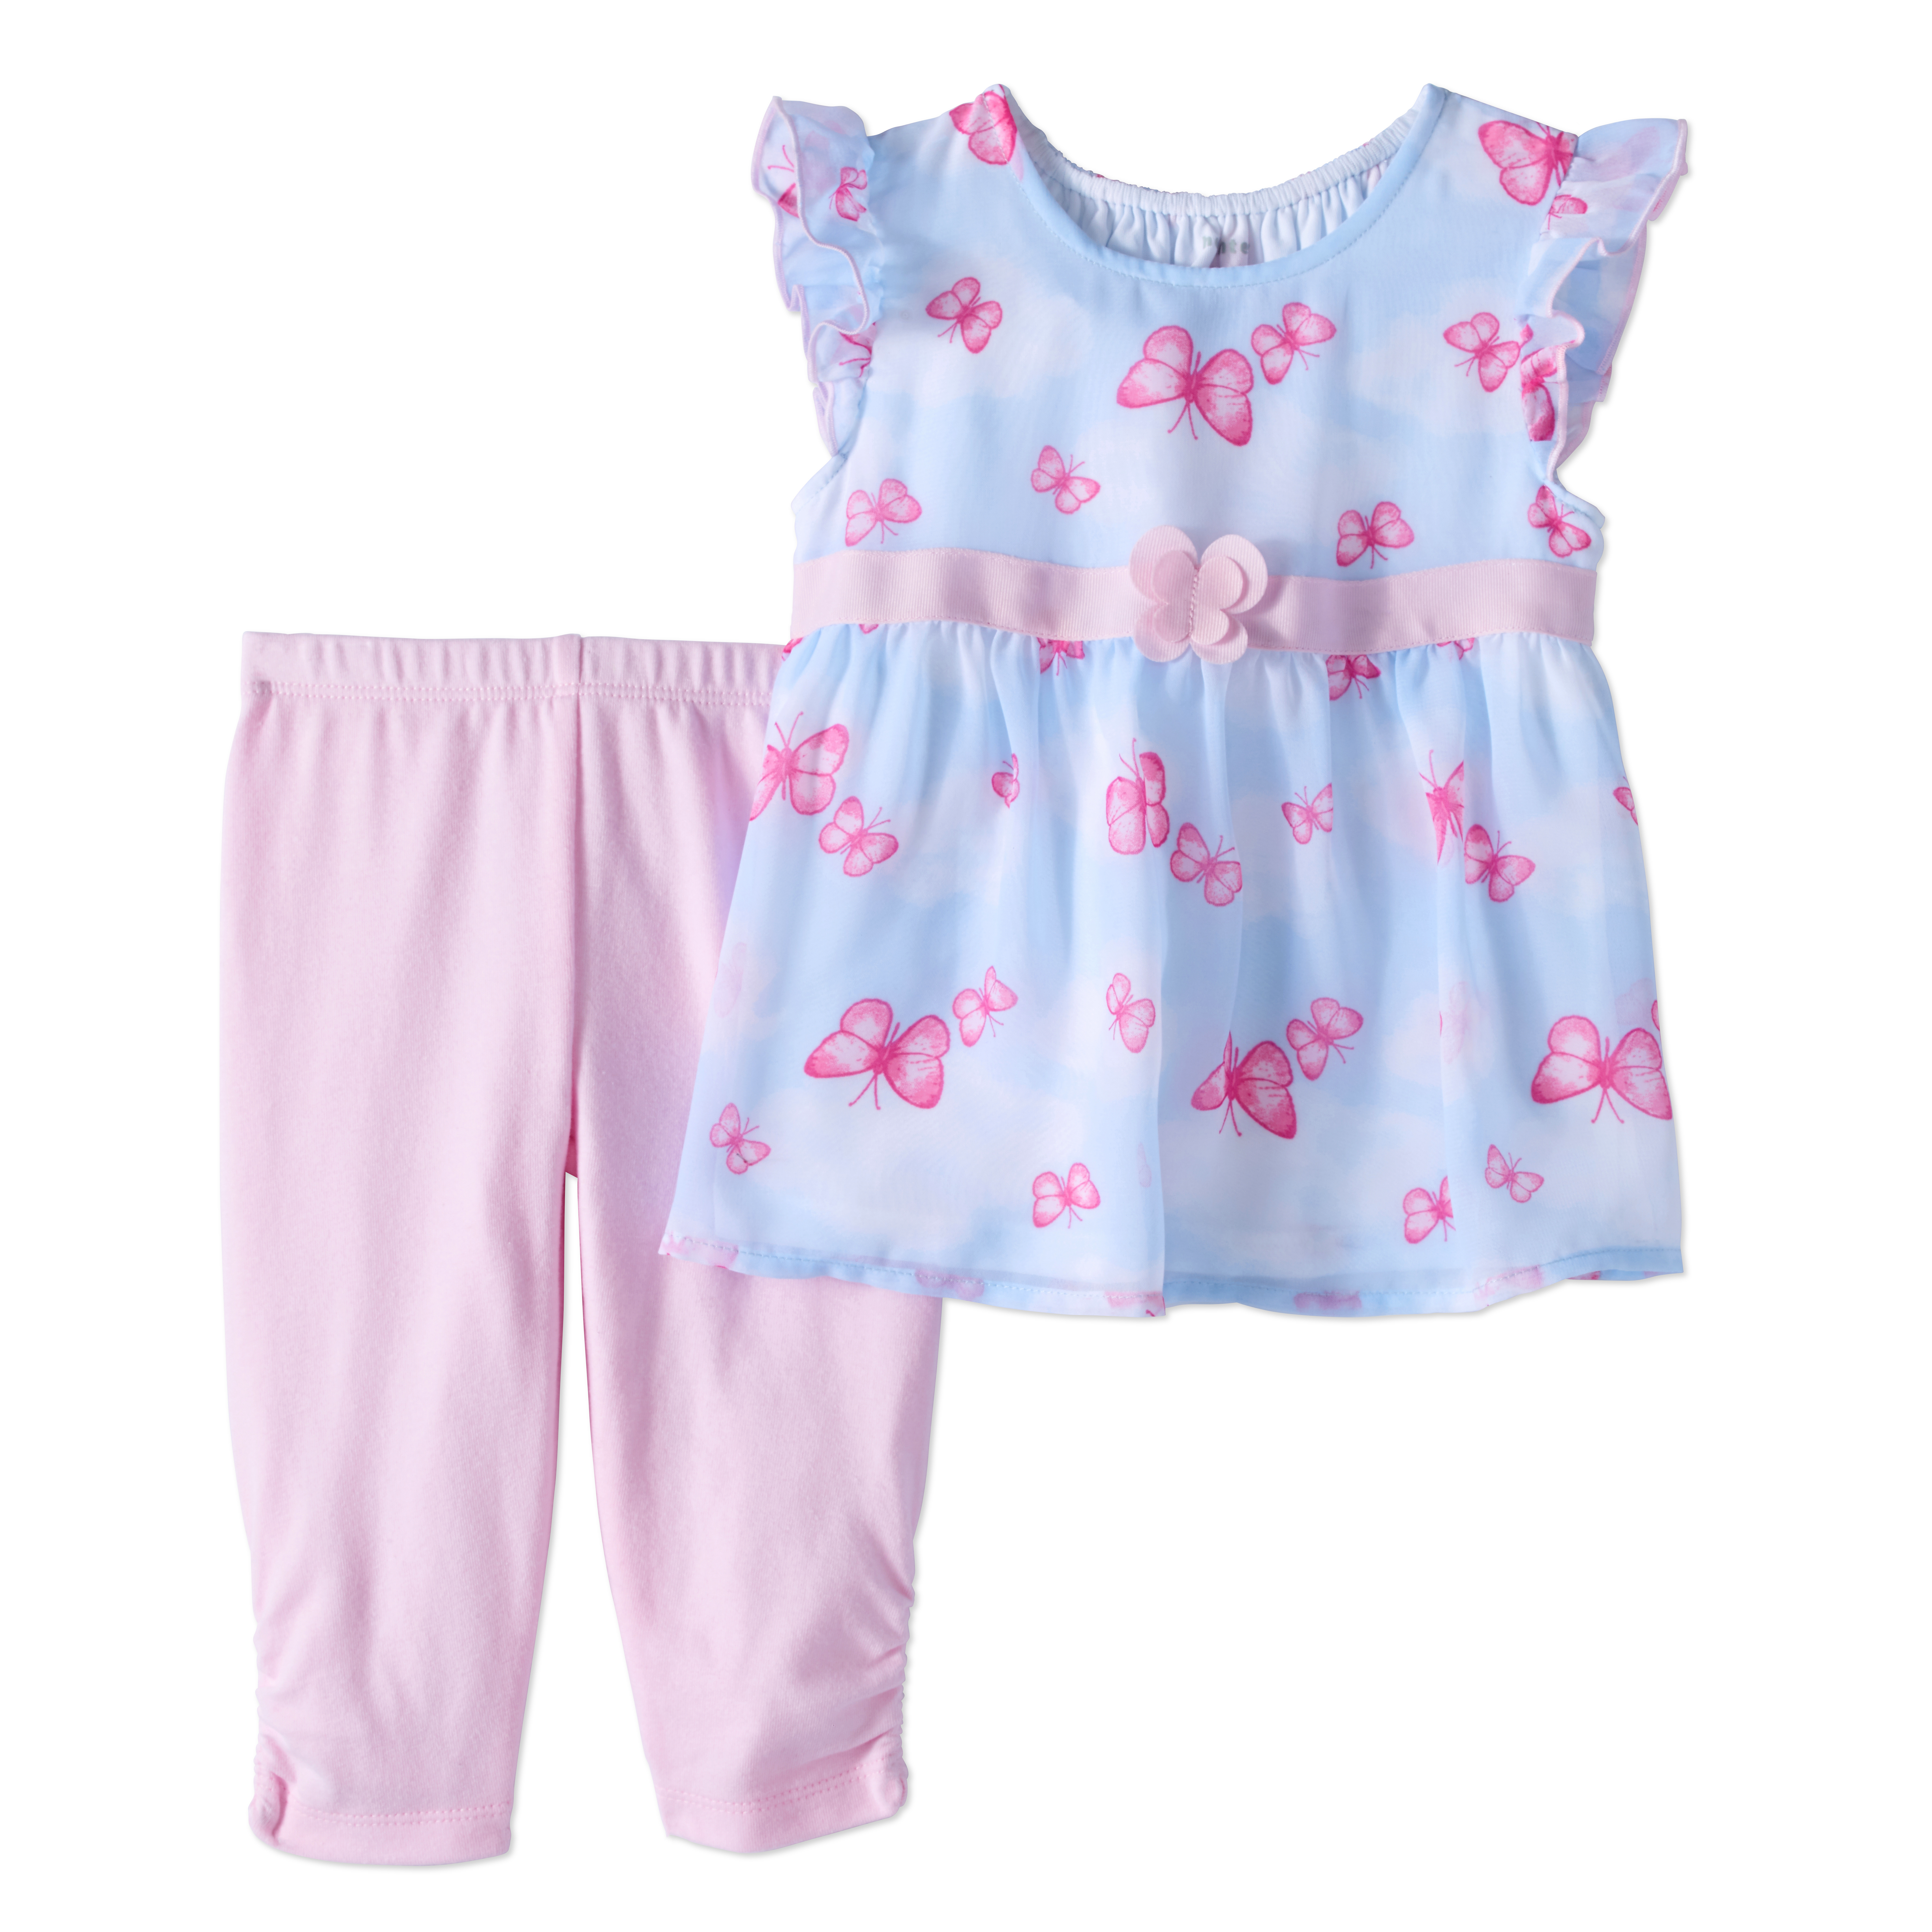 Healthtex Baby Girl Chiffon Tunic & Knit Leggings, 2Pc Outfit Set